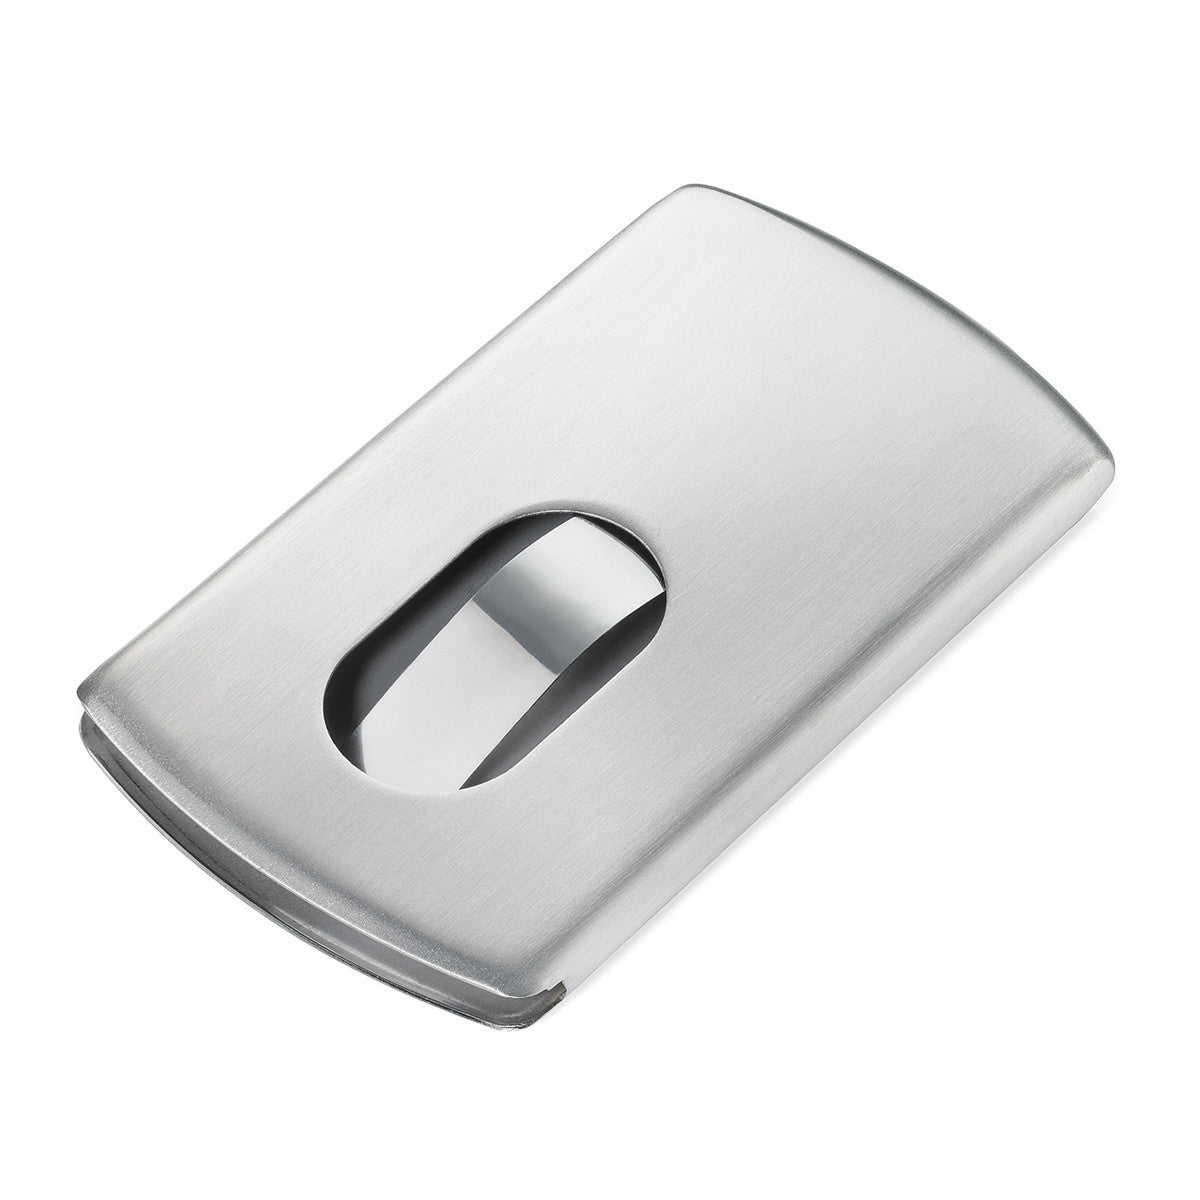 Troika Slide Business Card Case with Spring, Stainless | Troikaus.com